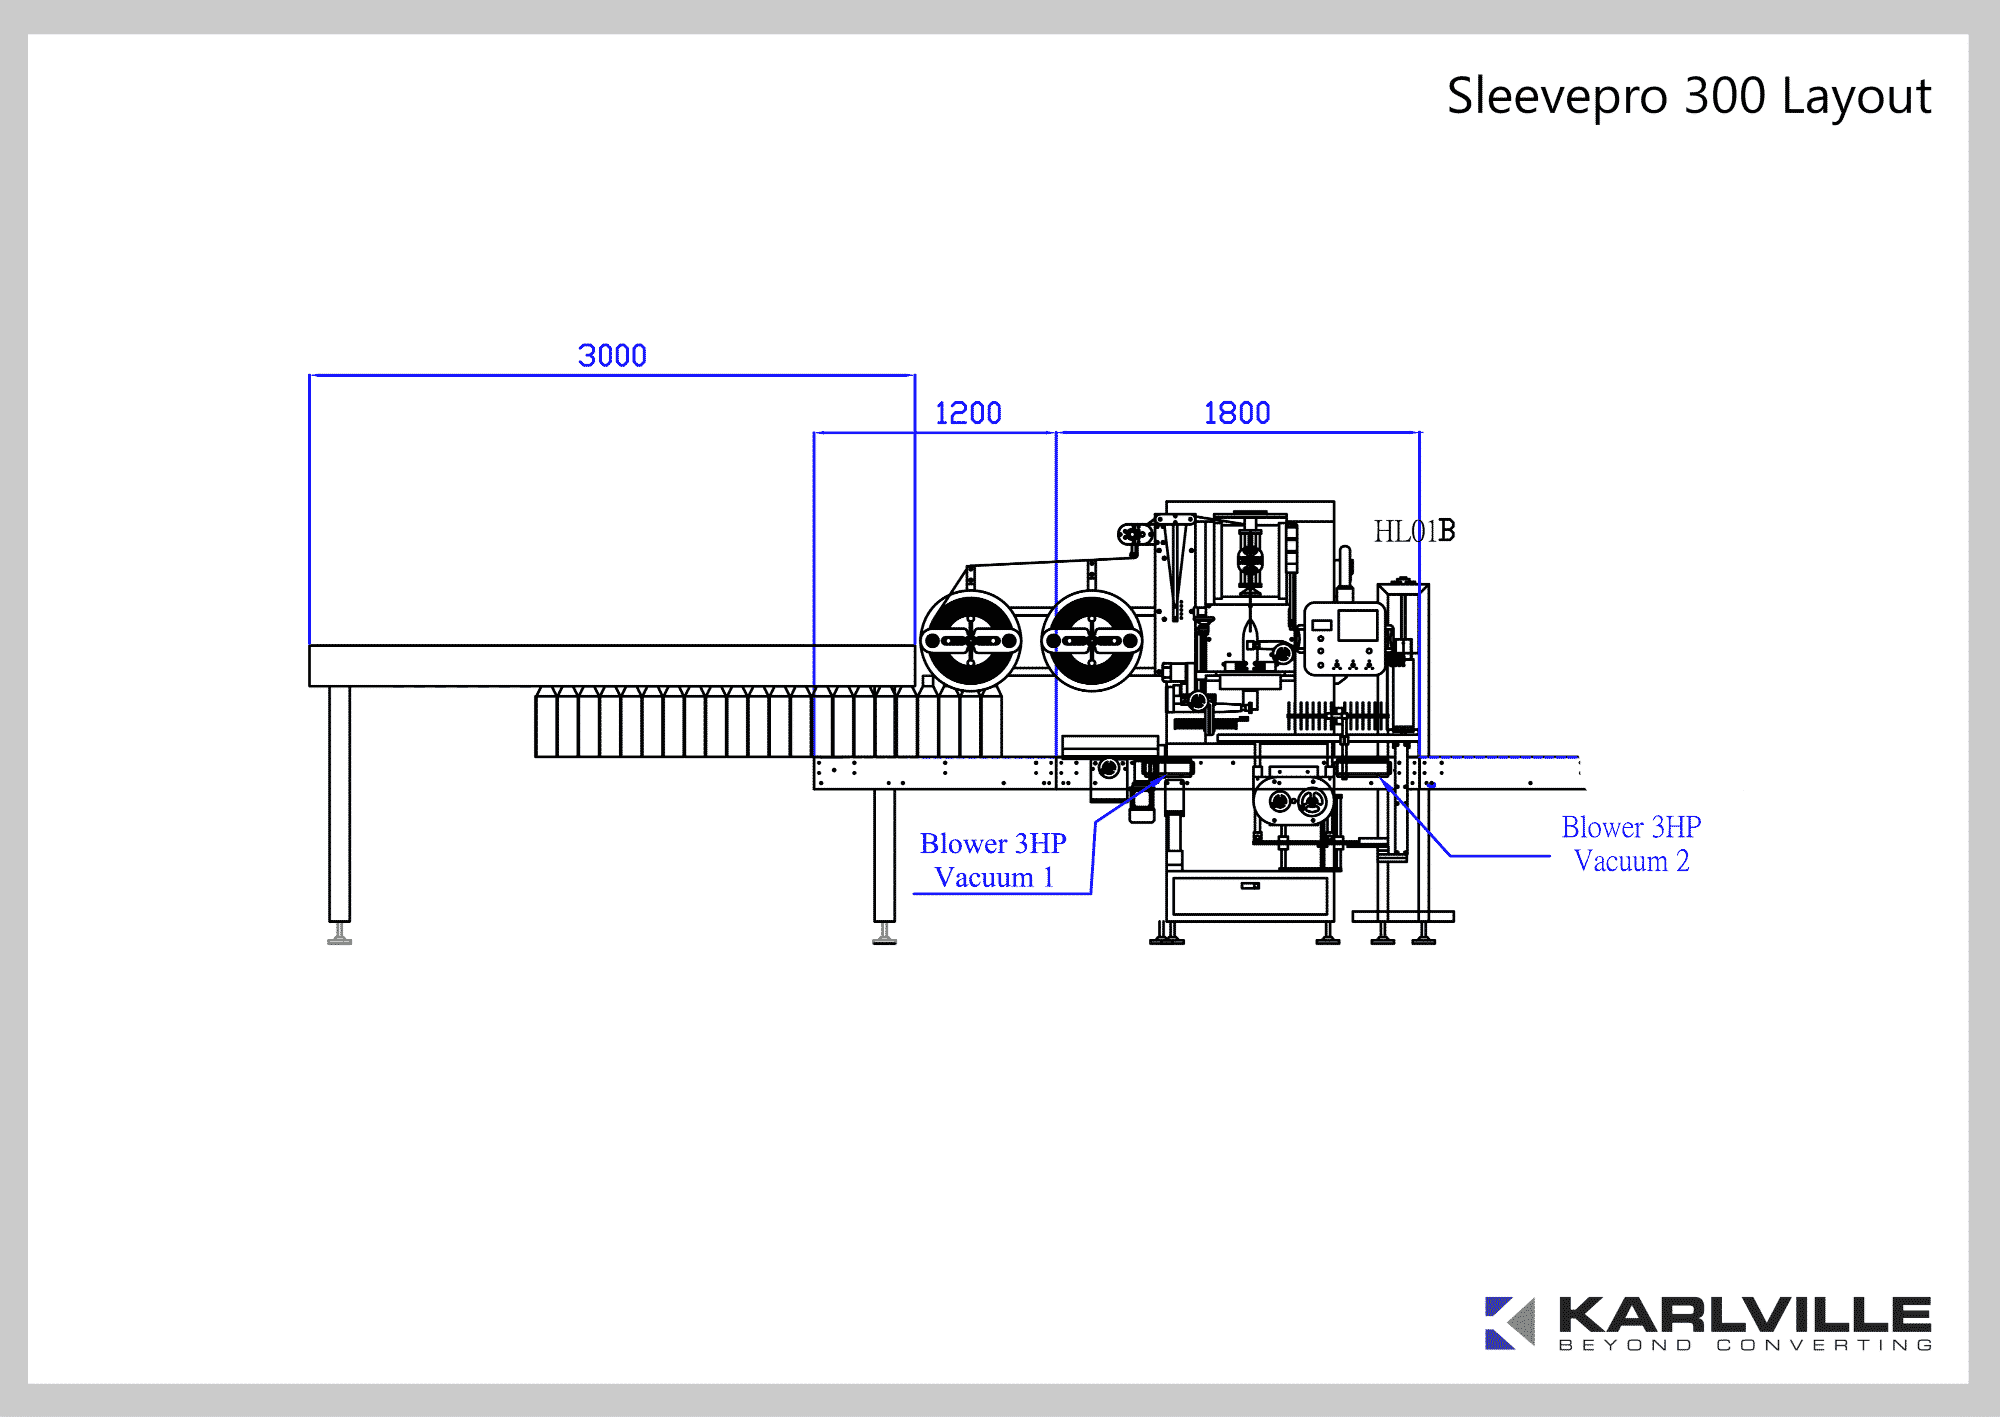 sleevepro 300 - shrink sleeve applicator equipment